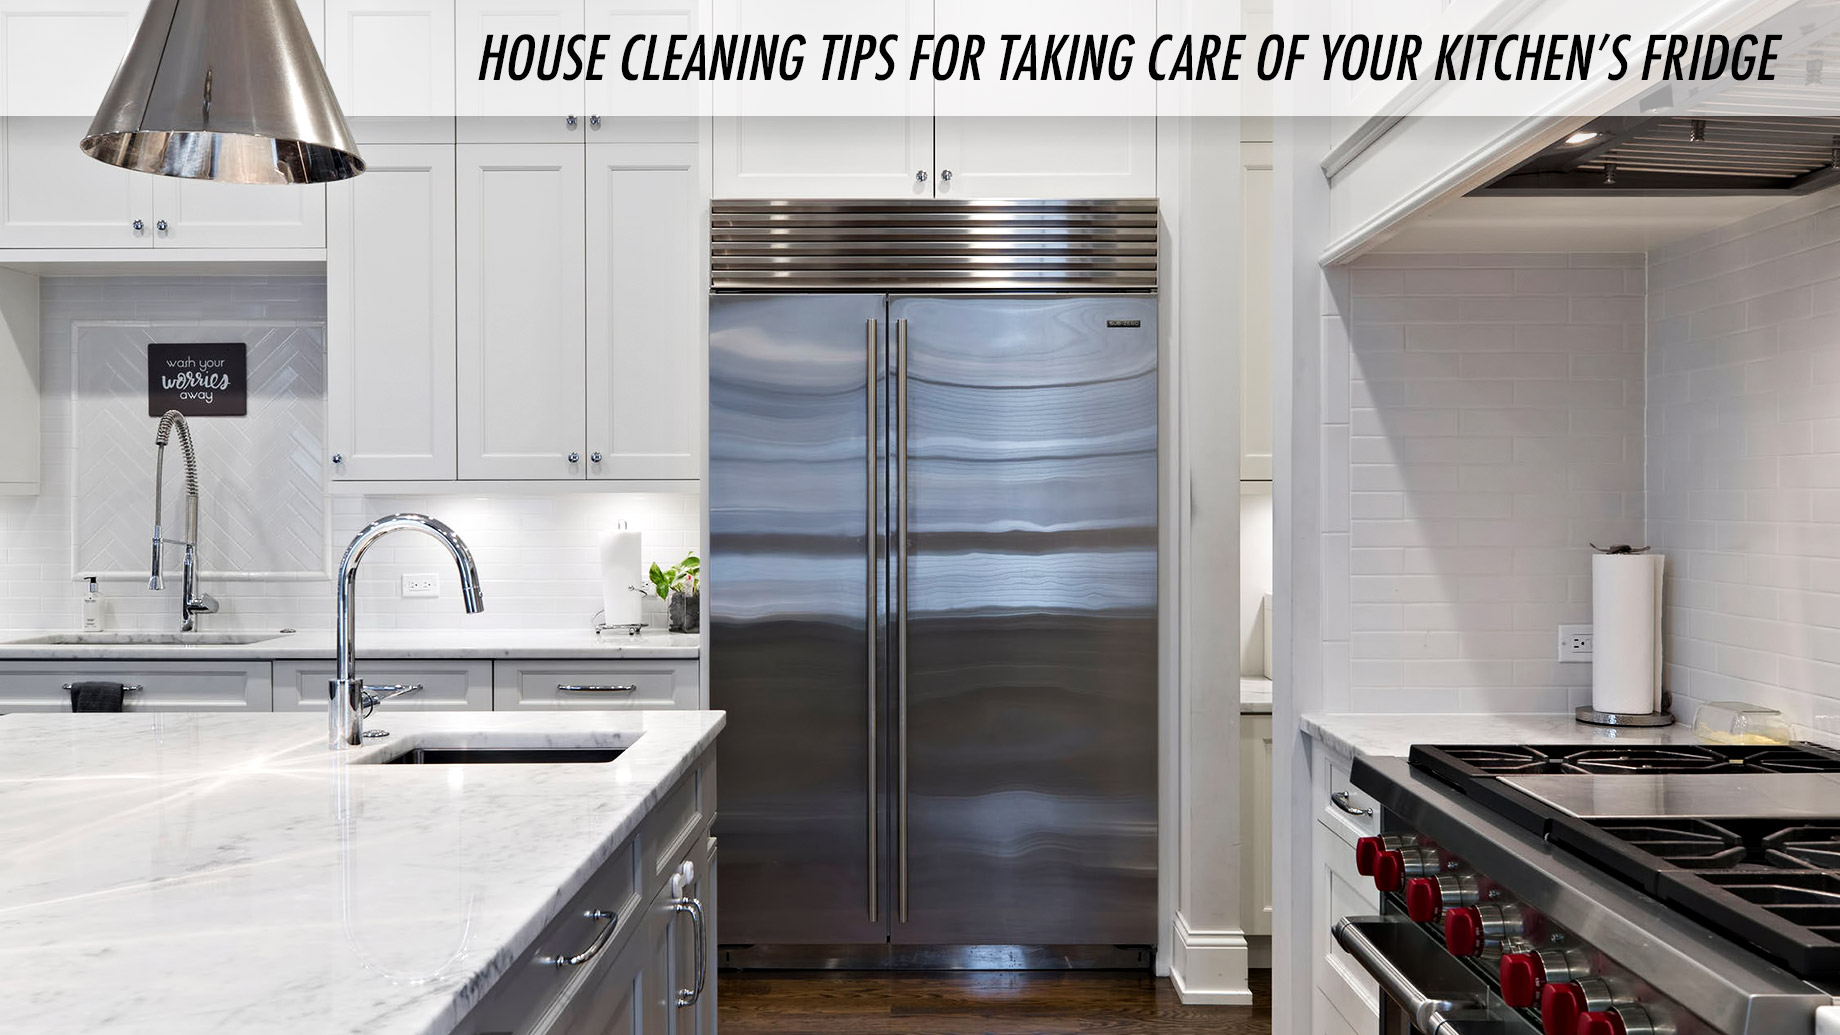 House Cleaning Tips for Taking Care of Your Kitchen's Fridge